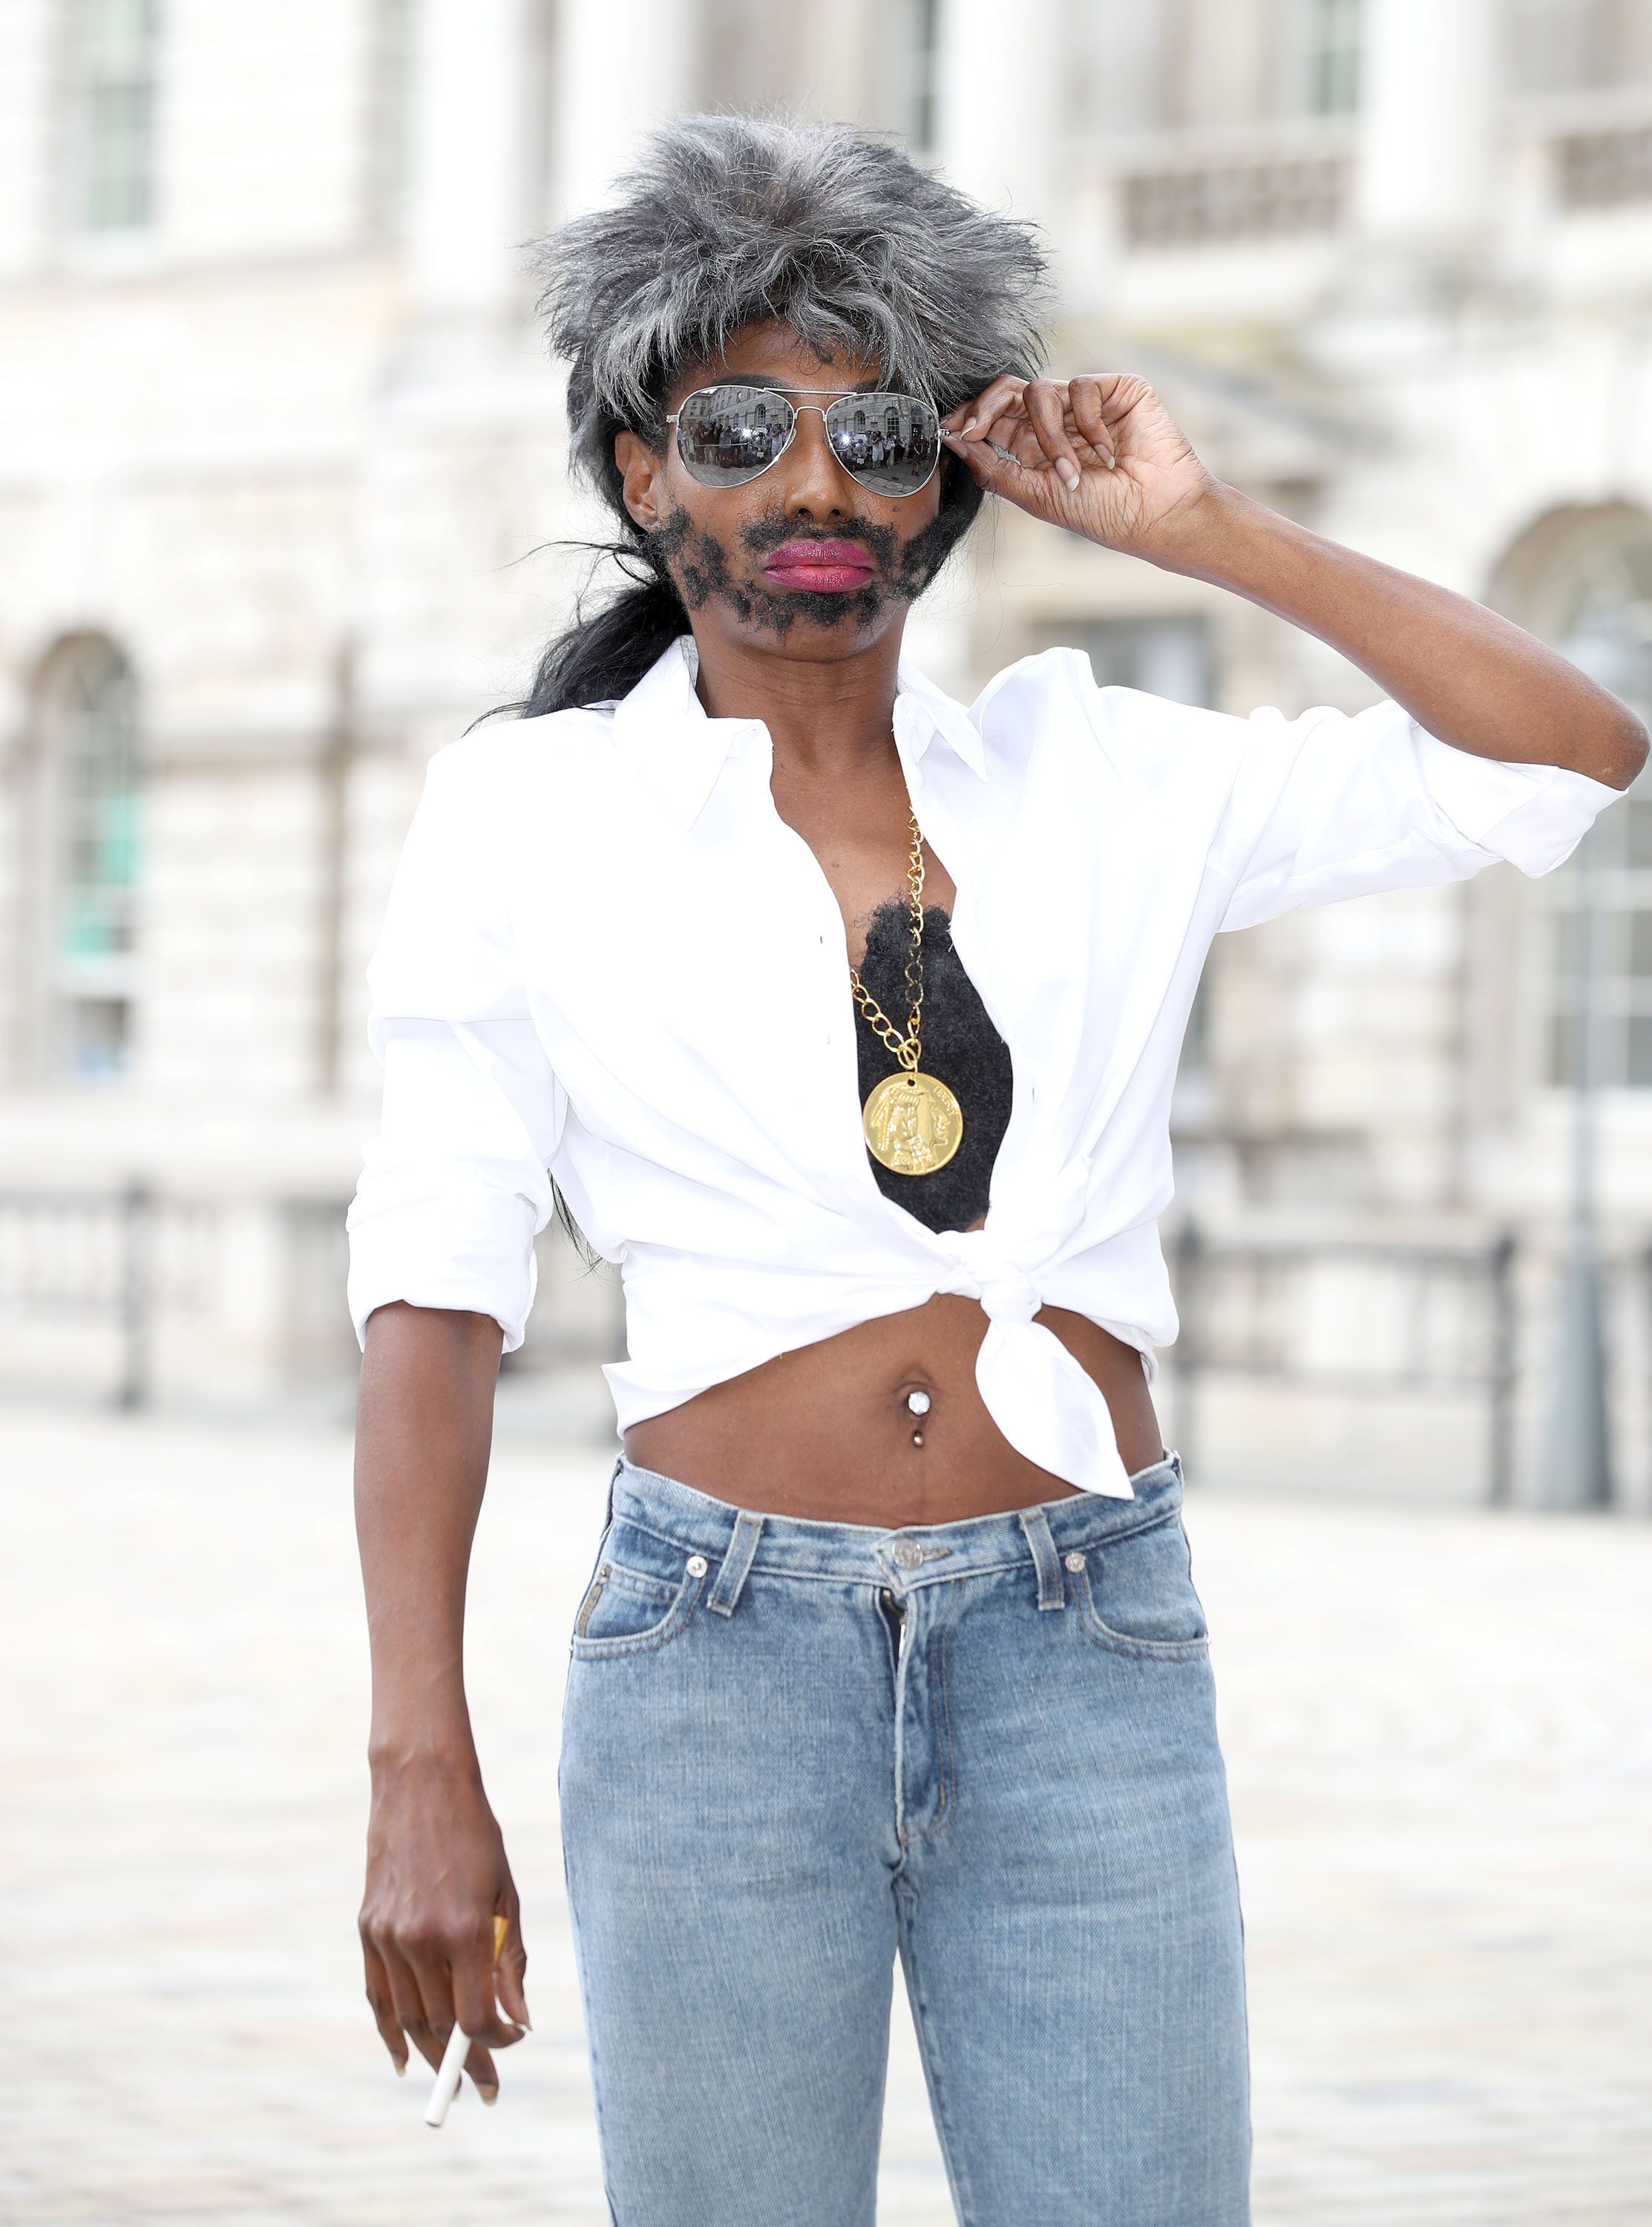 Sinitta Arrives At 'X Factor' Press Conference Dressed As Simon Cowell